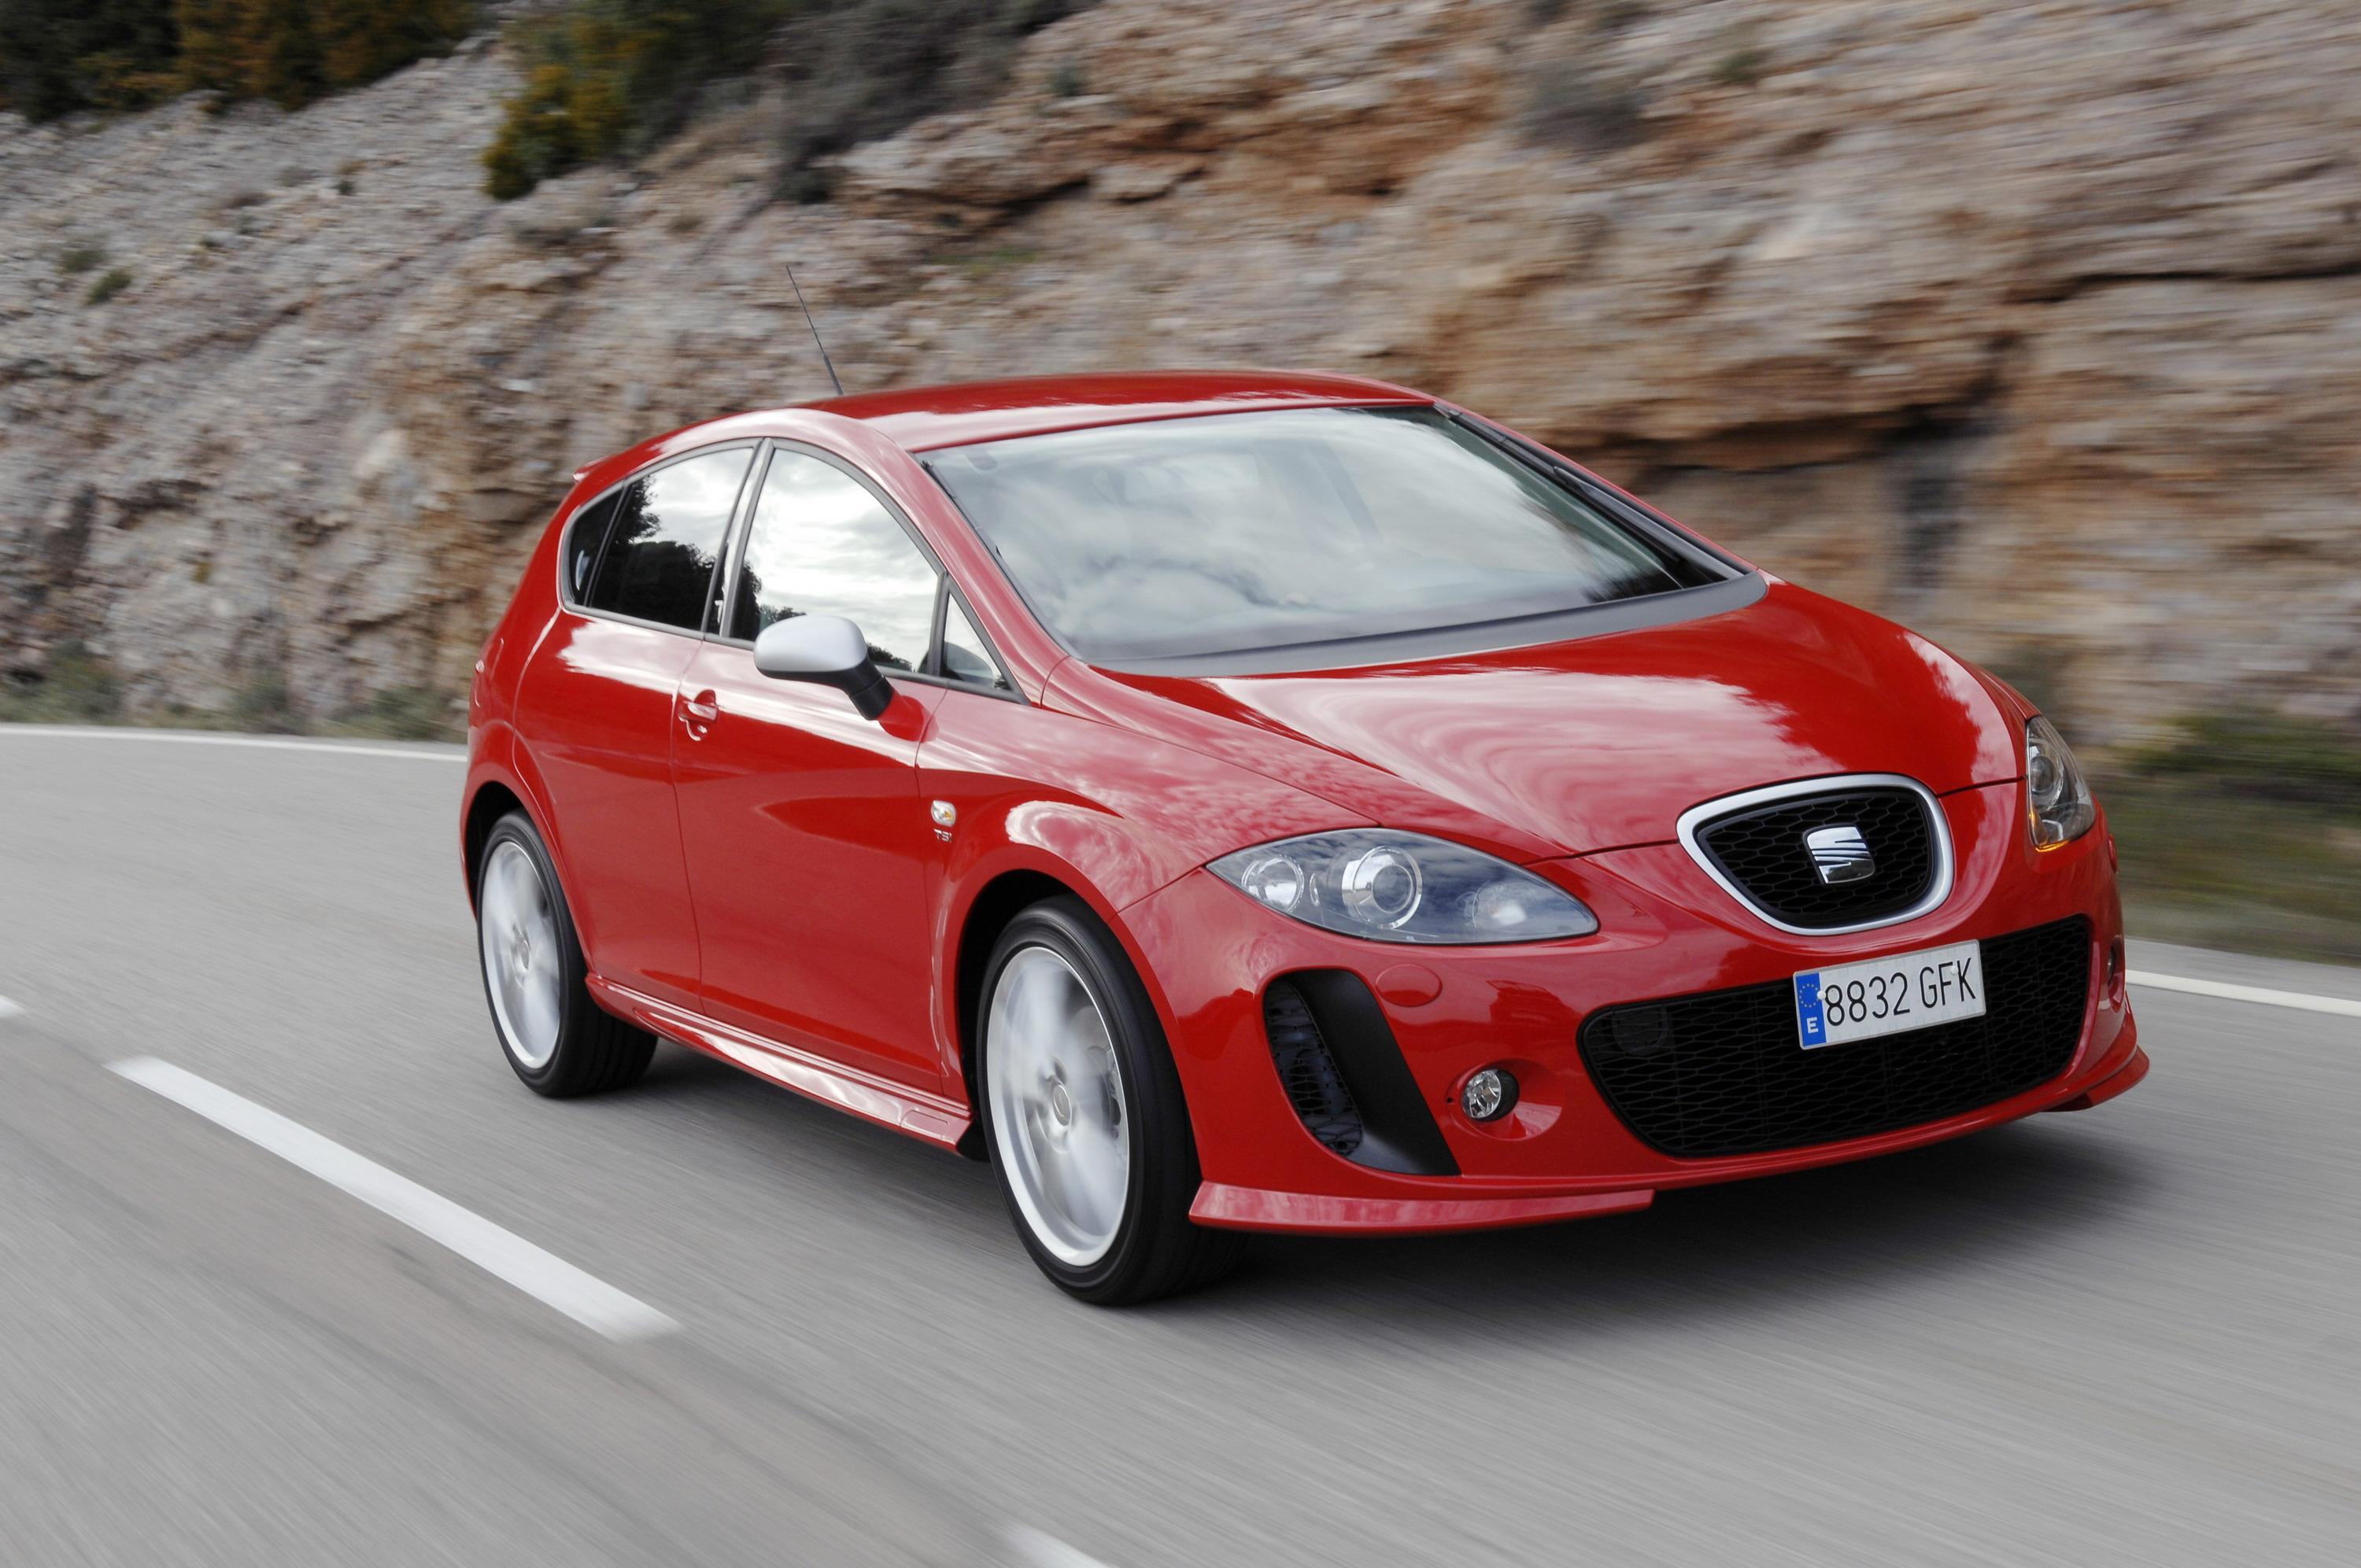 2009 seat leon linea r review top speed. Black Bedroom Furniture Sets. Home Design Ideas